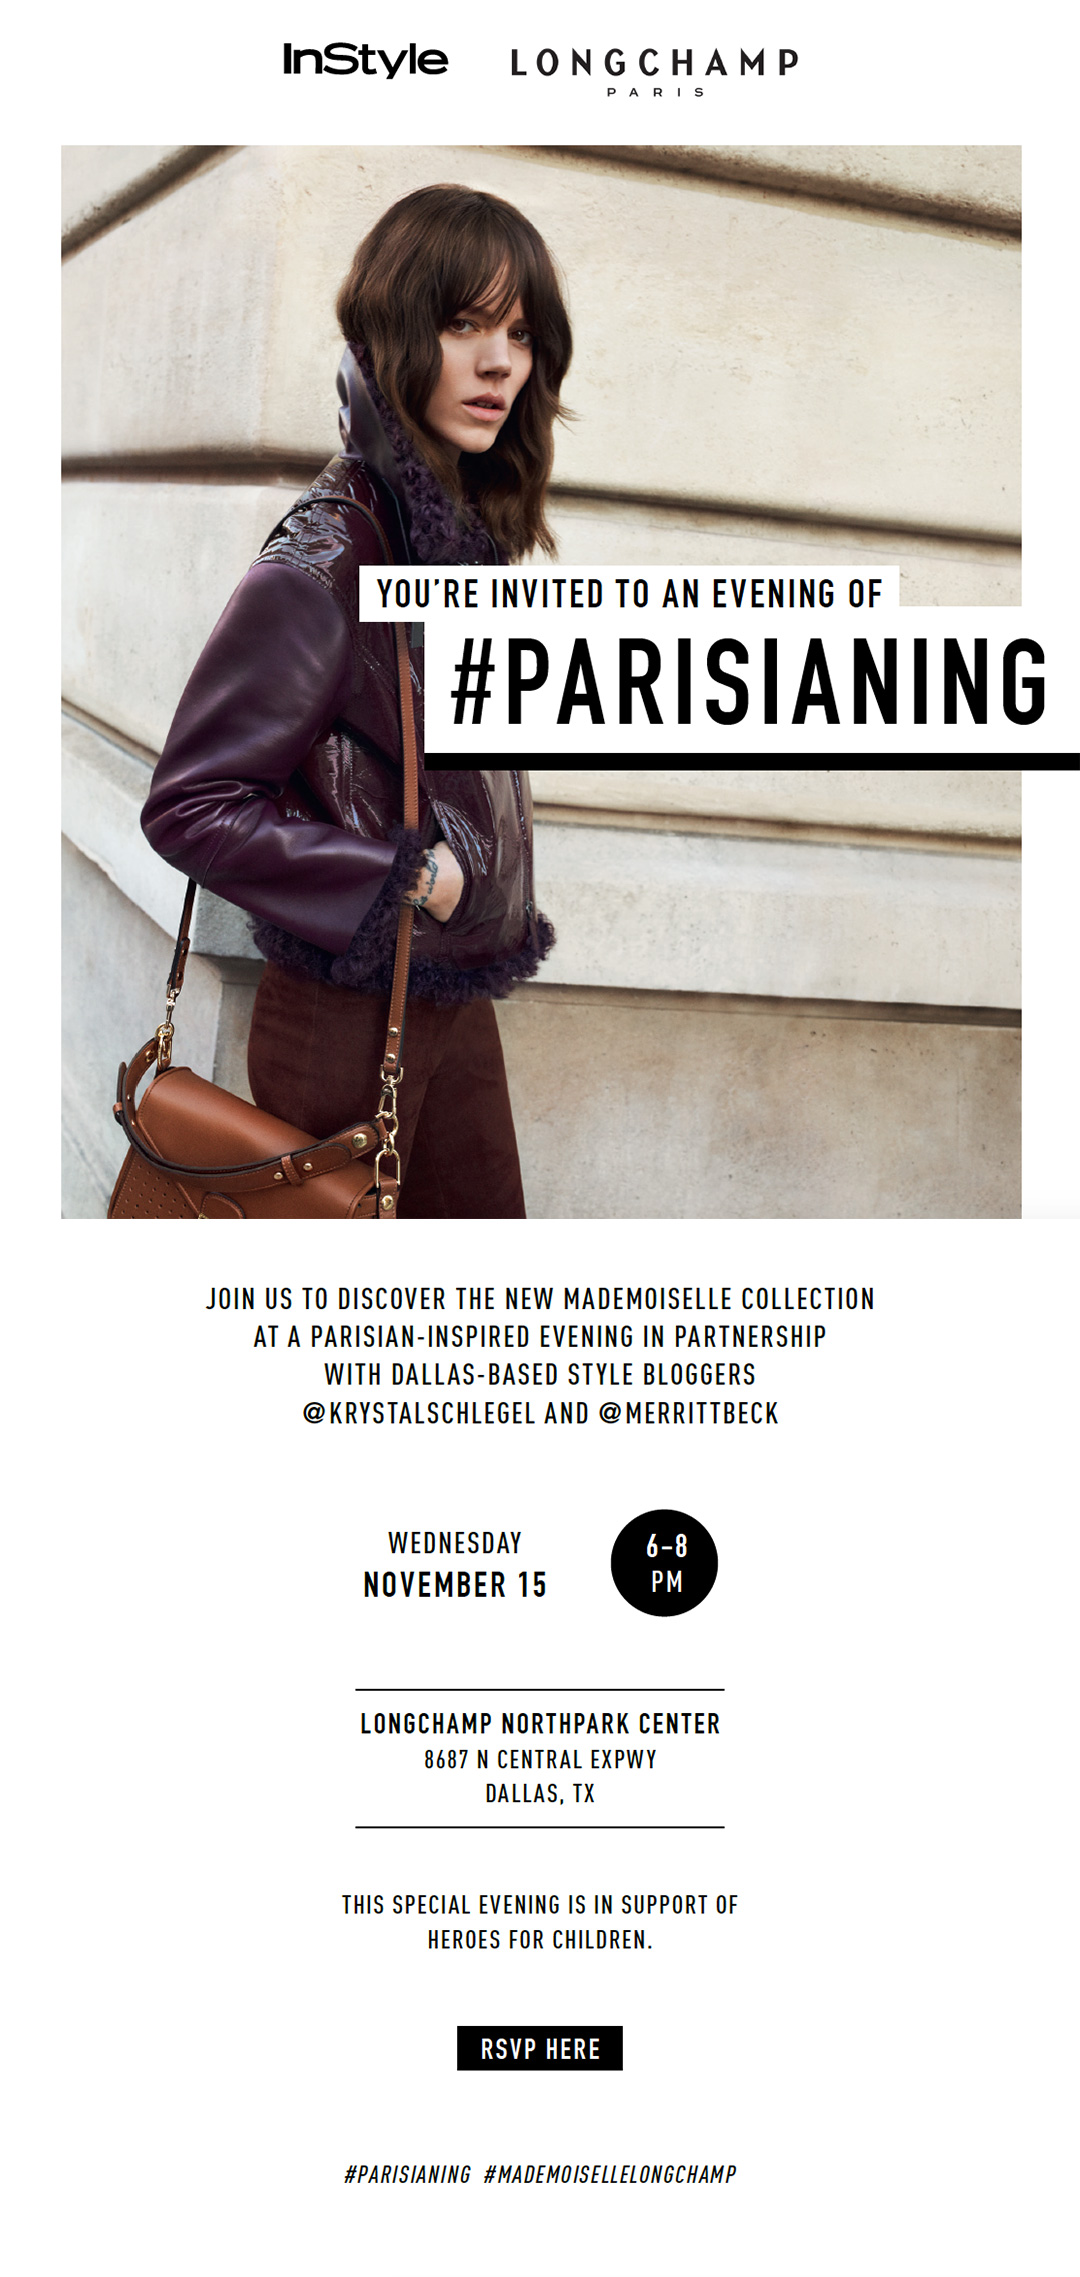 Longchamp Dallas Invitation | The Style Scribe